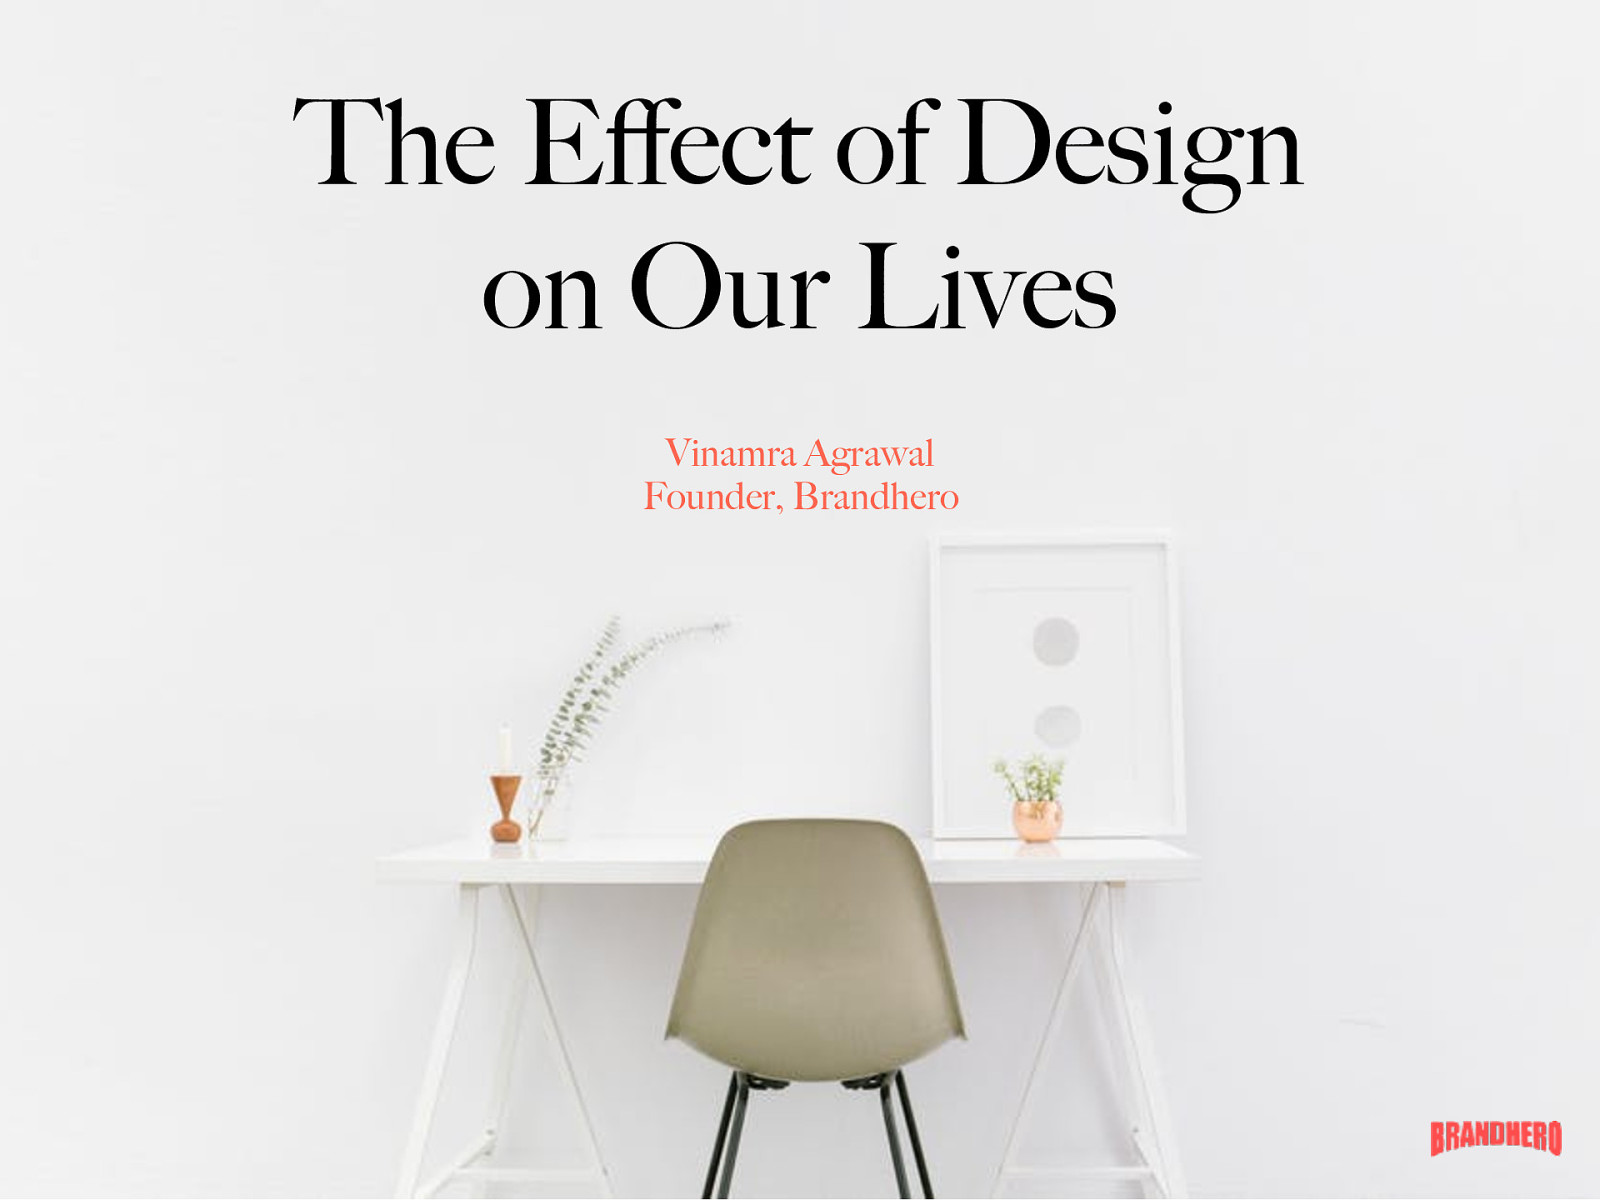 The Effect of Design on Our Lives